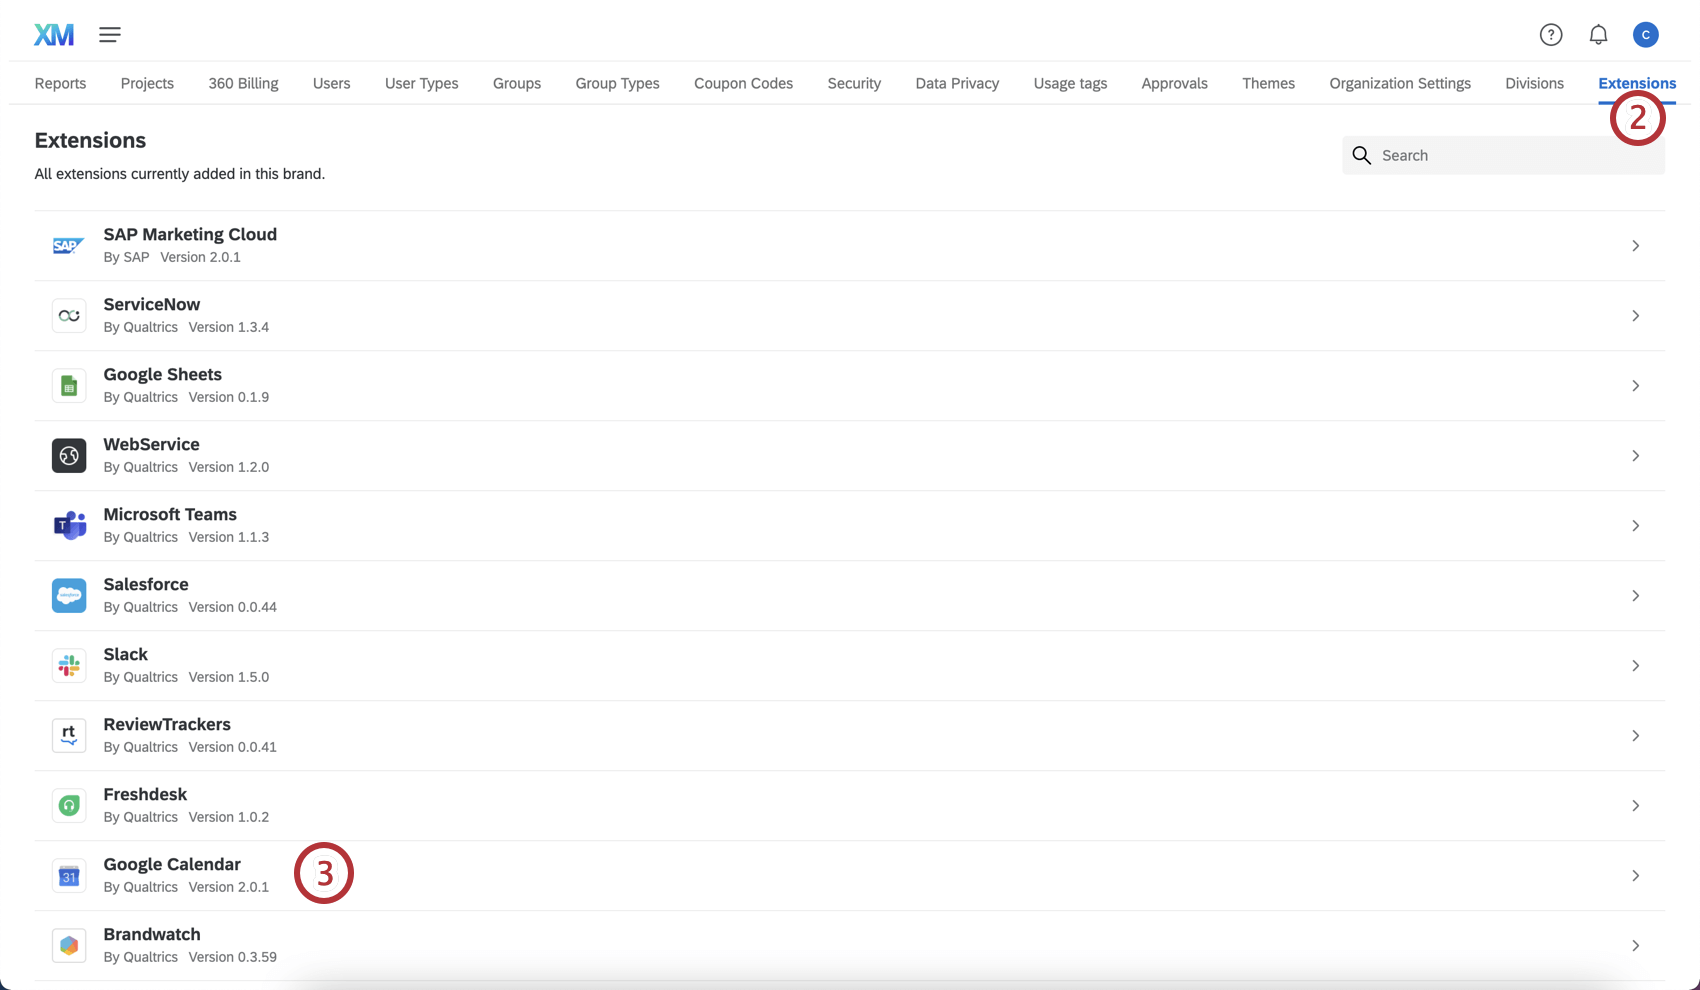 List of extensions with #3 next to Google Calendar extension.